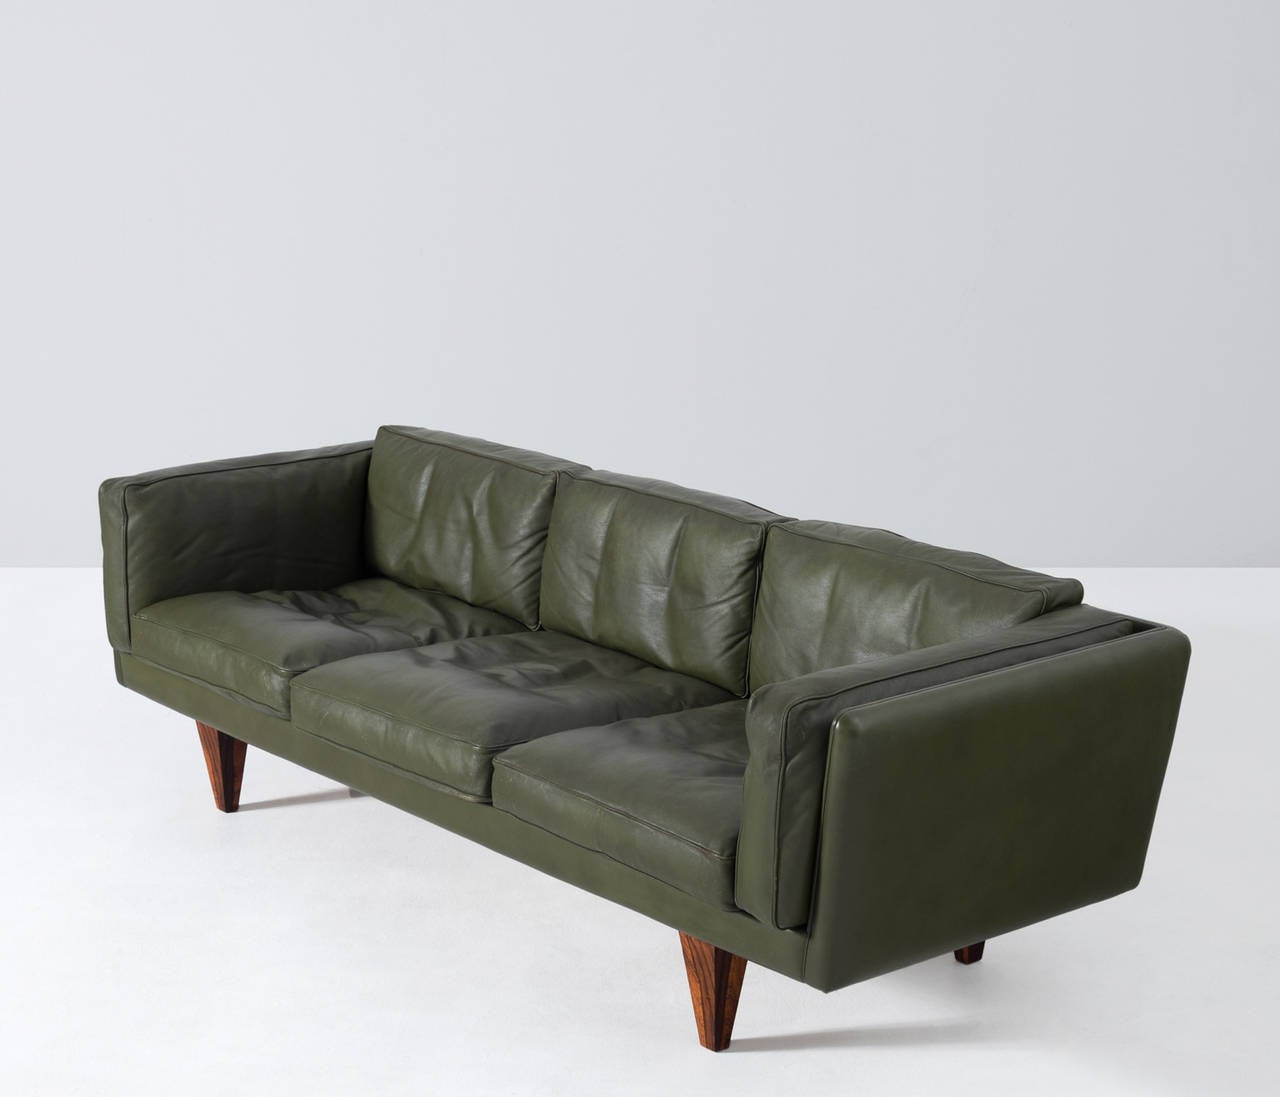 down filled leather sectional sofa bed sales singapore by illum wikkelsø cushions for sale at